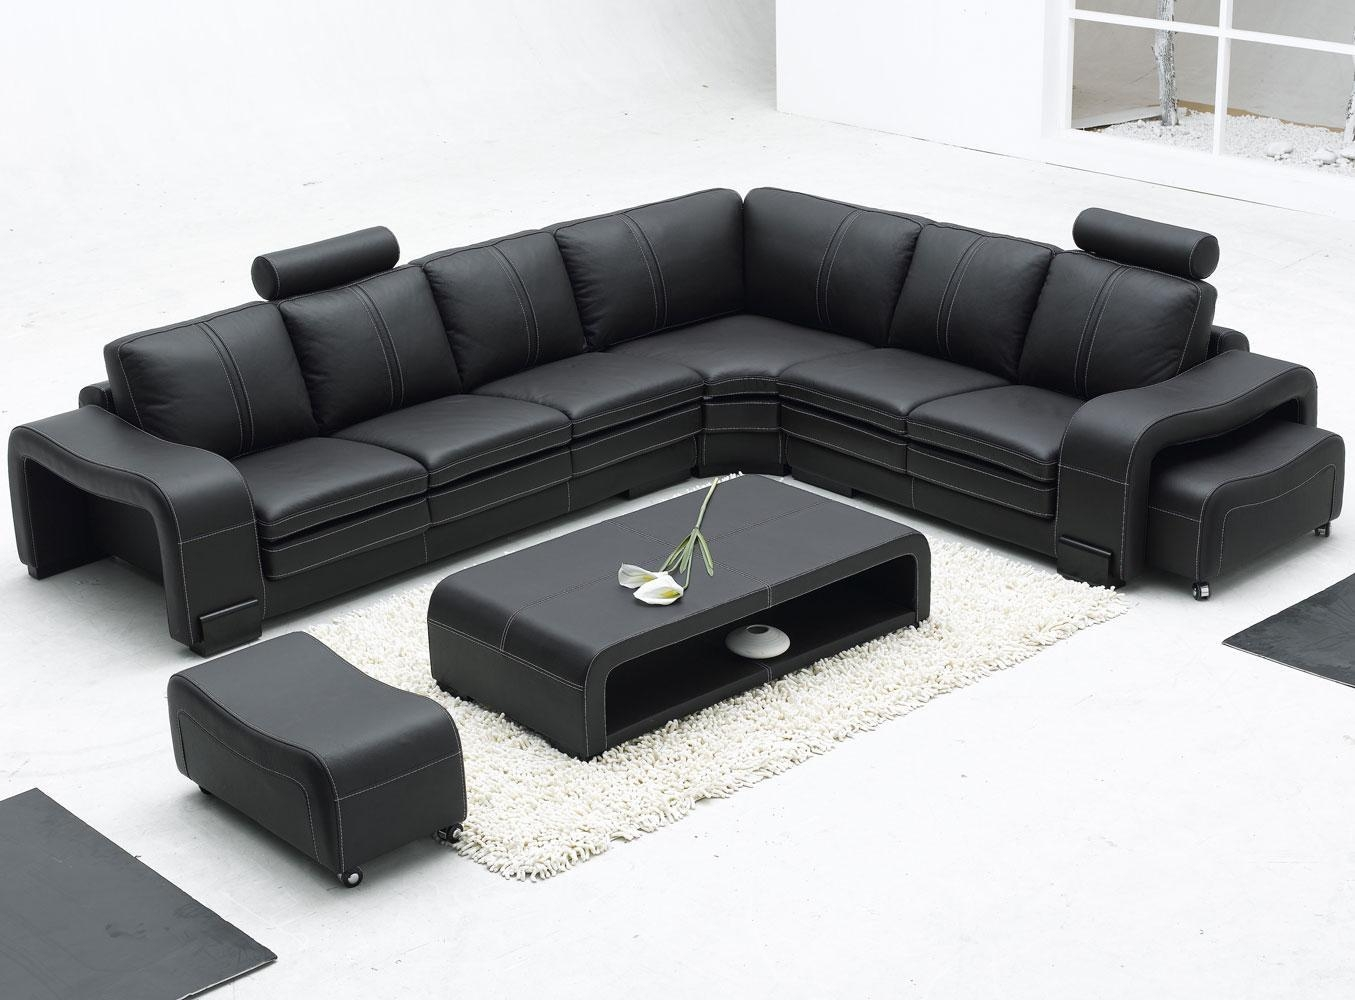 Furniture: Modern Bonded Leather Sectional Sofa In Black And Inside Black Modern Sectional Sofas (Image 10 of 20)